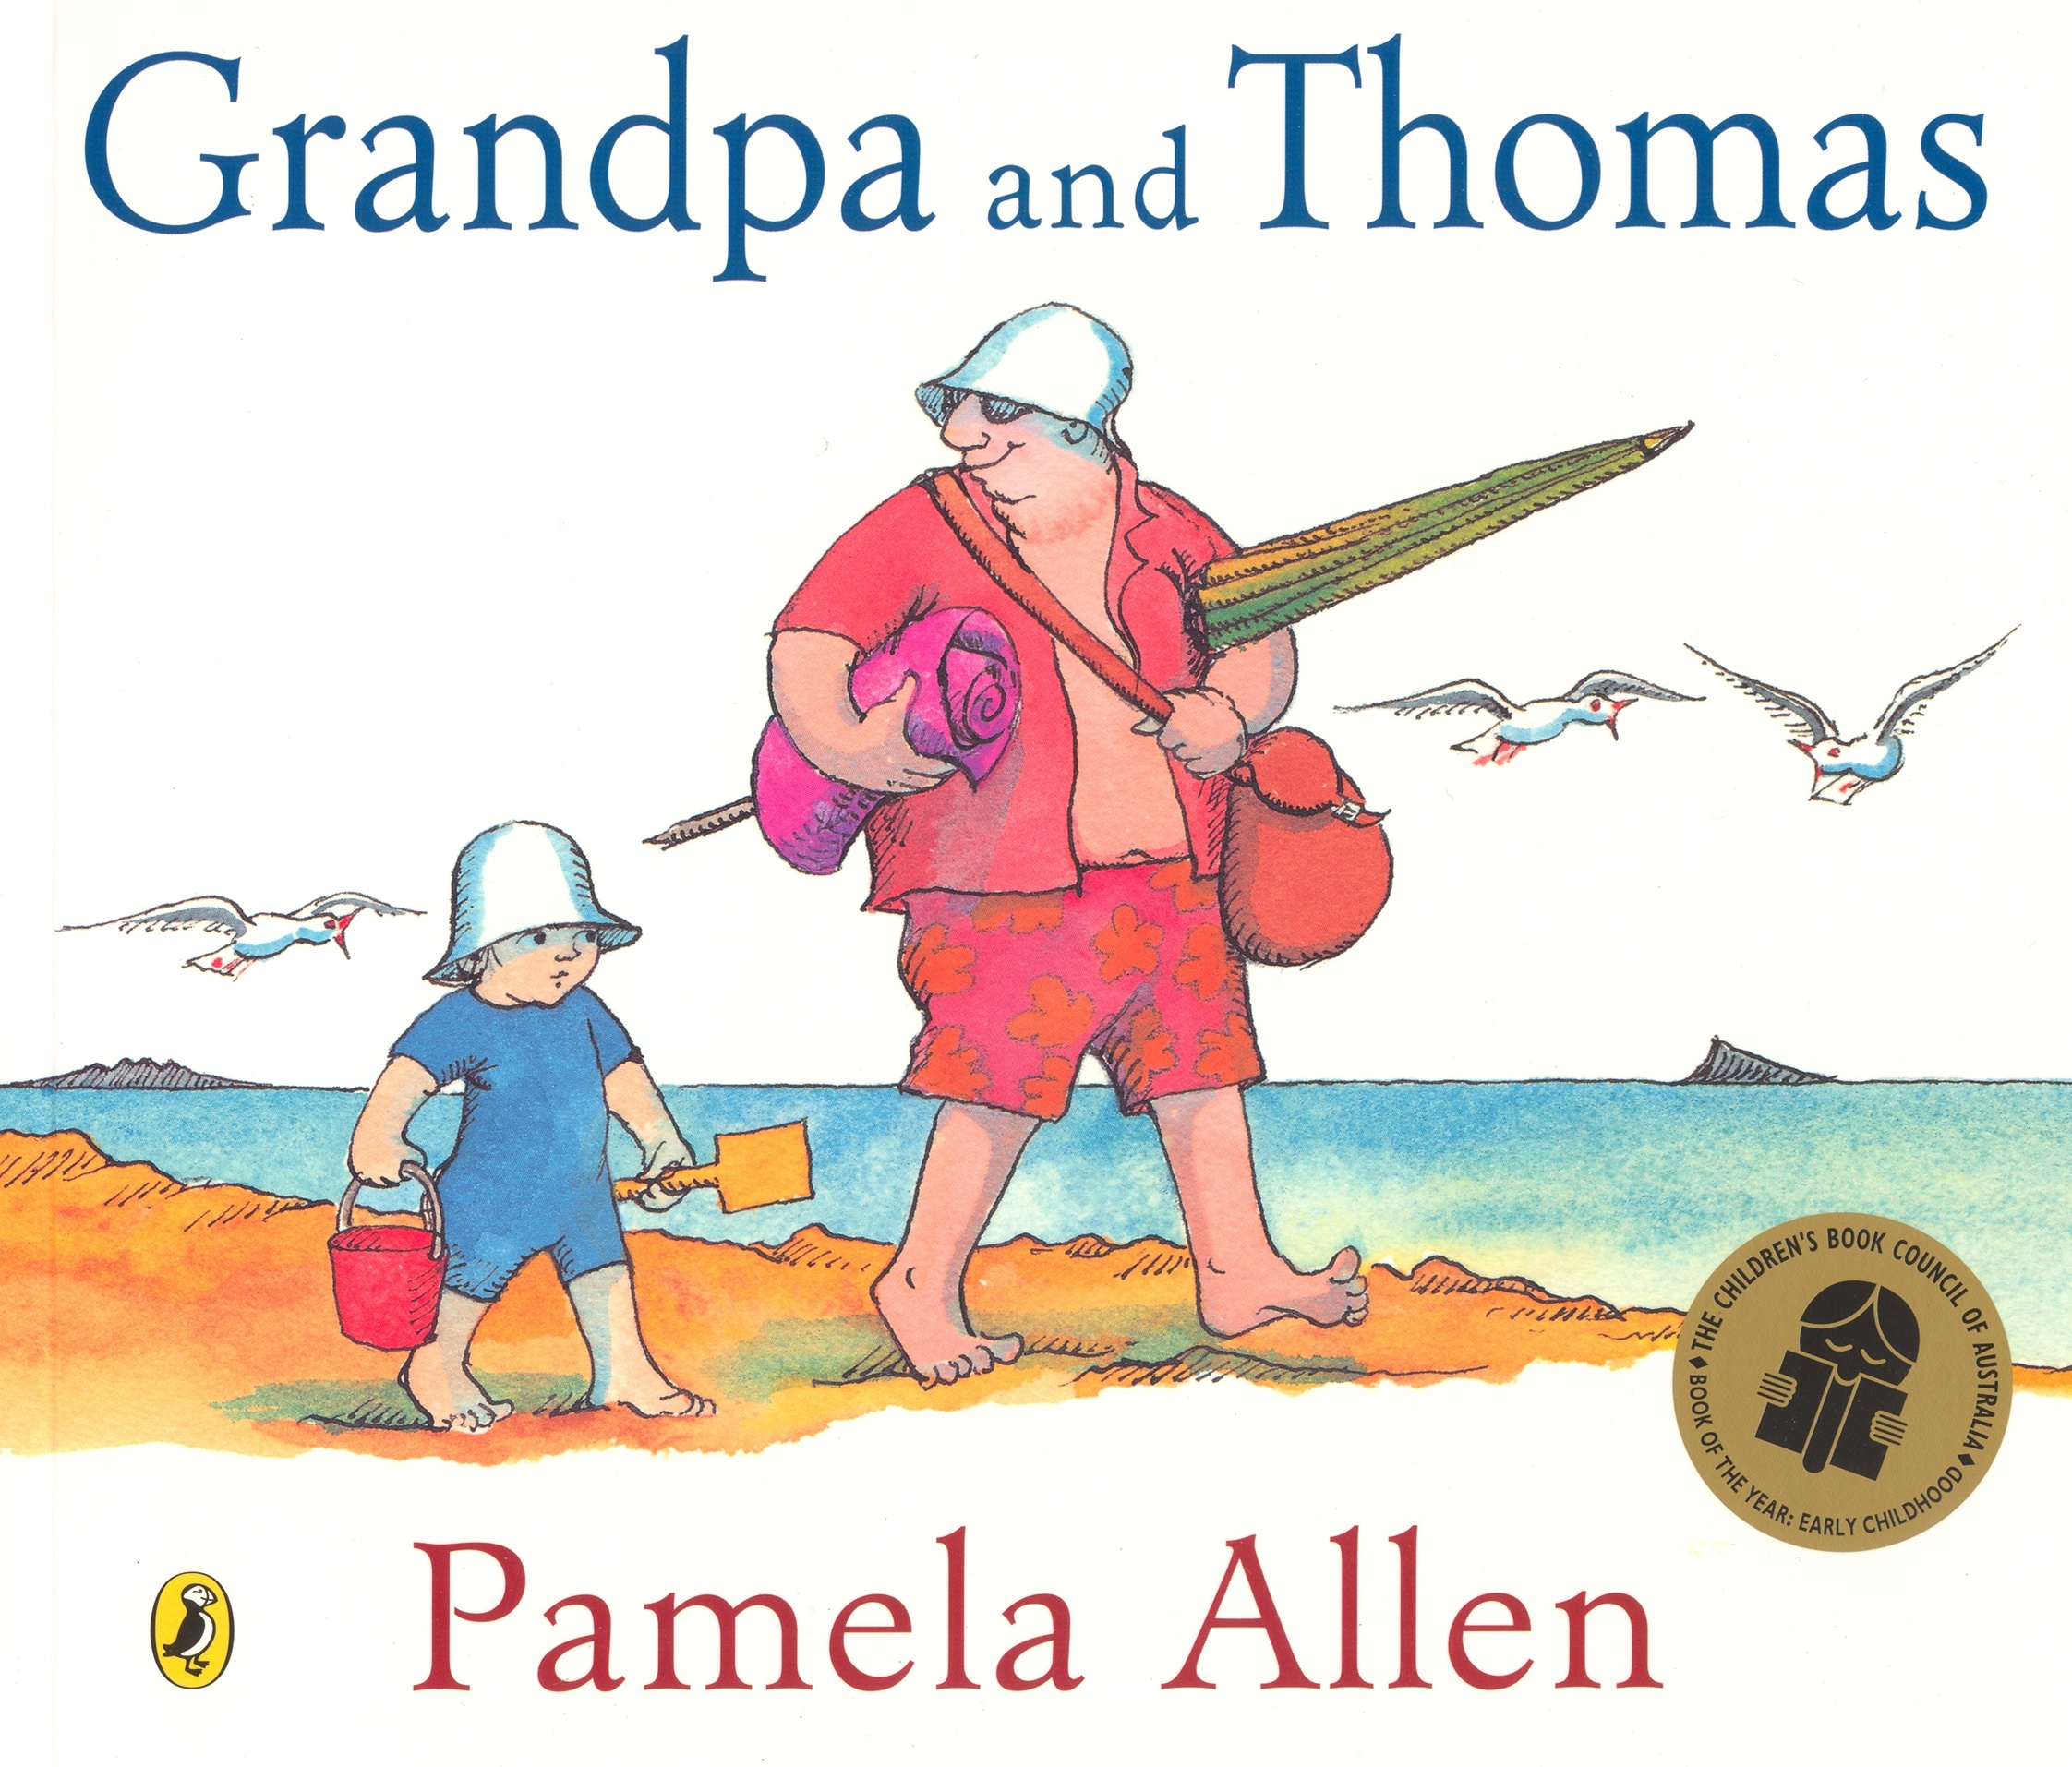 Grandpa and Thomas (Pamela Allen, Penguin Australia, 2005)